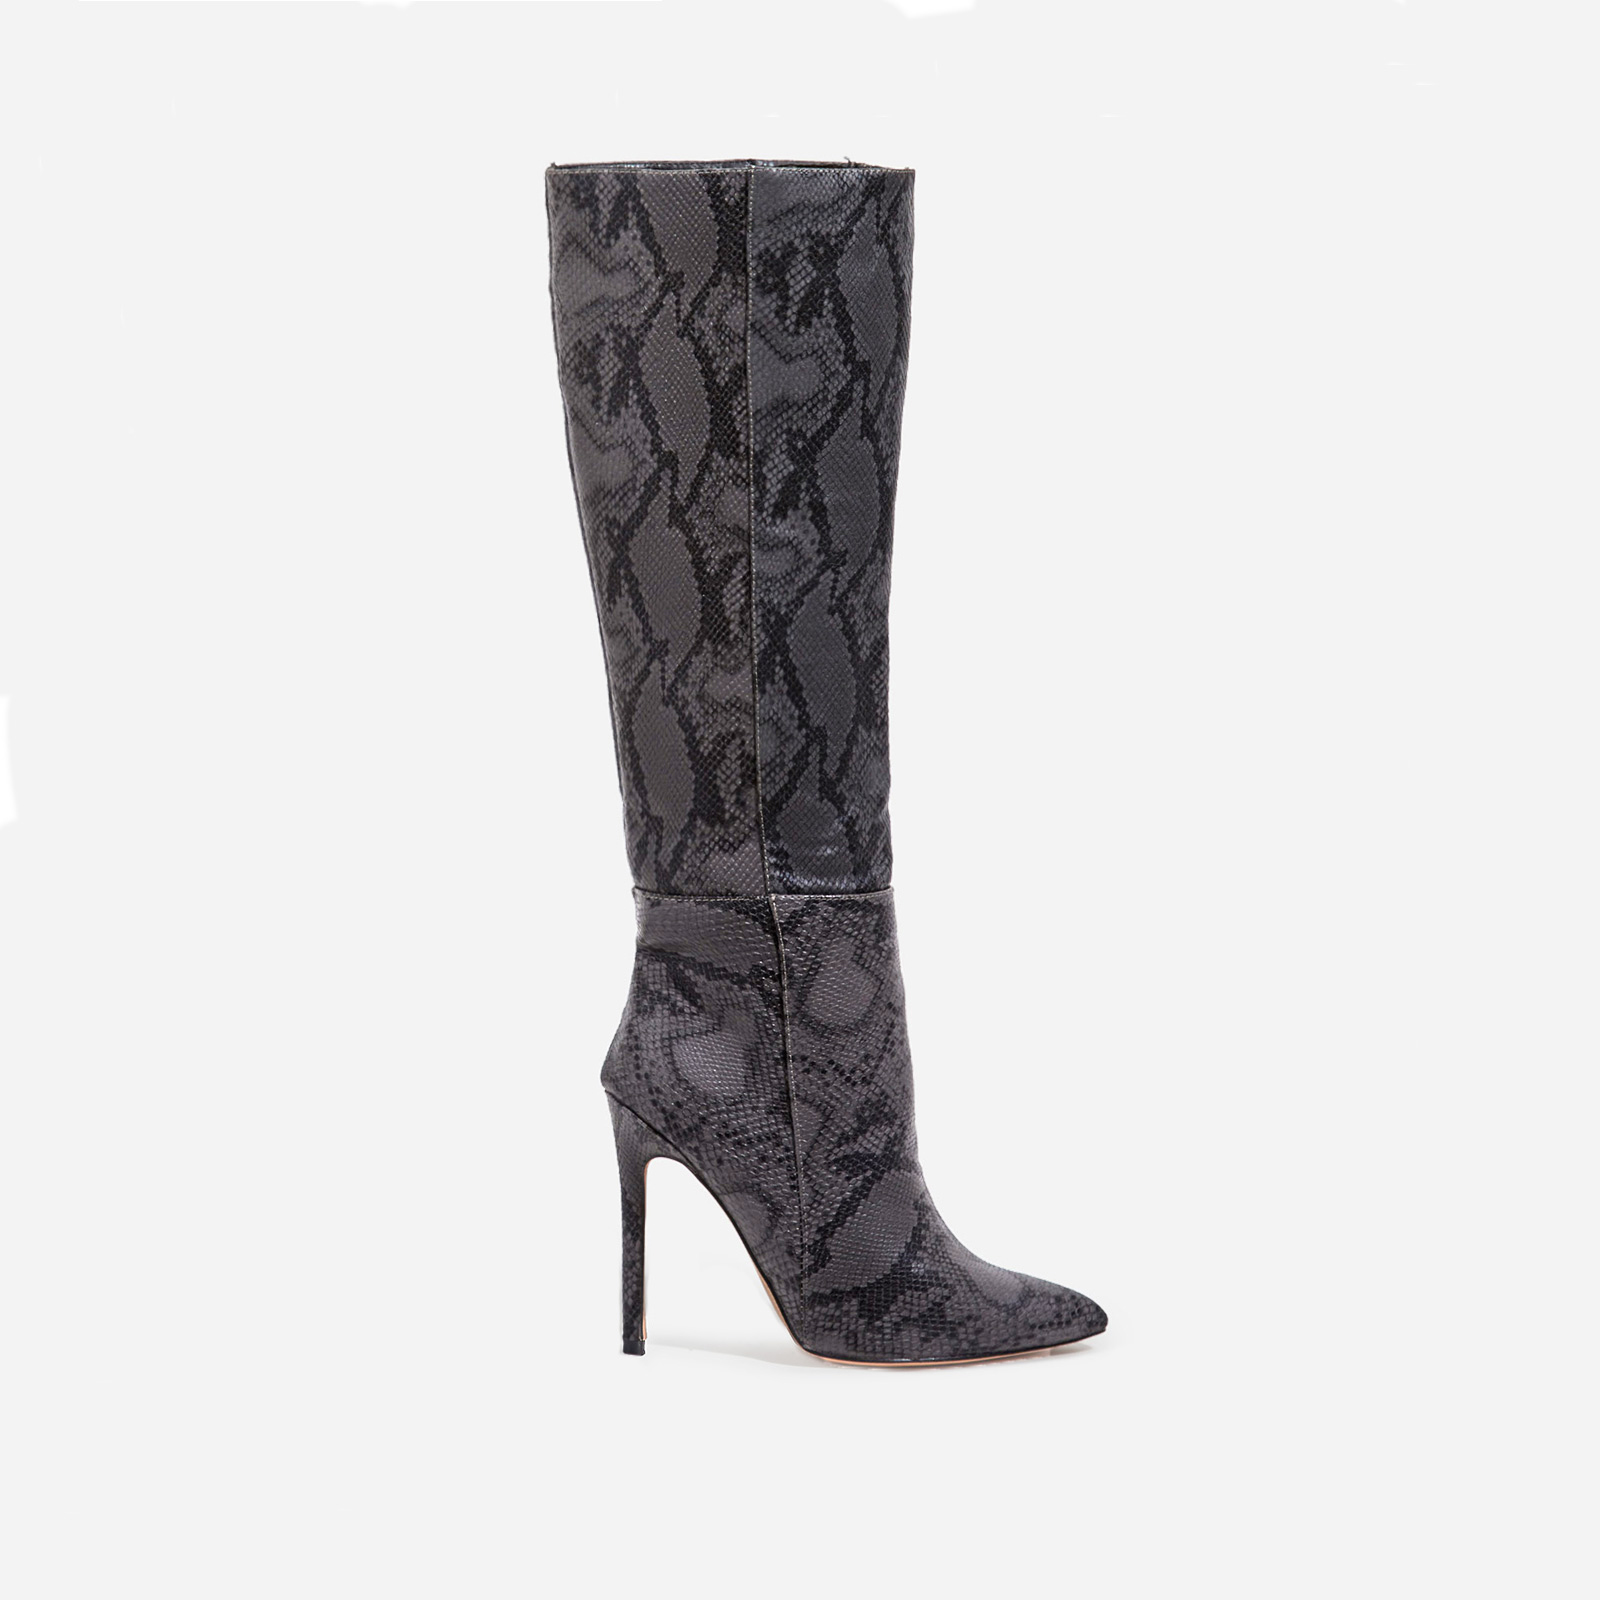 Rose Knee High Long Boot In Grey Snake Print Faux Leather